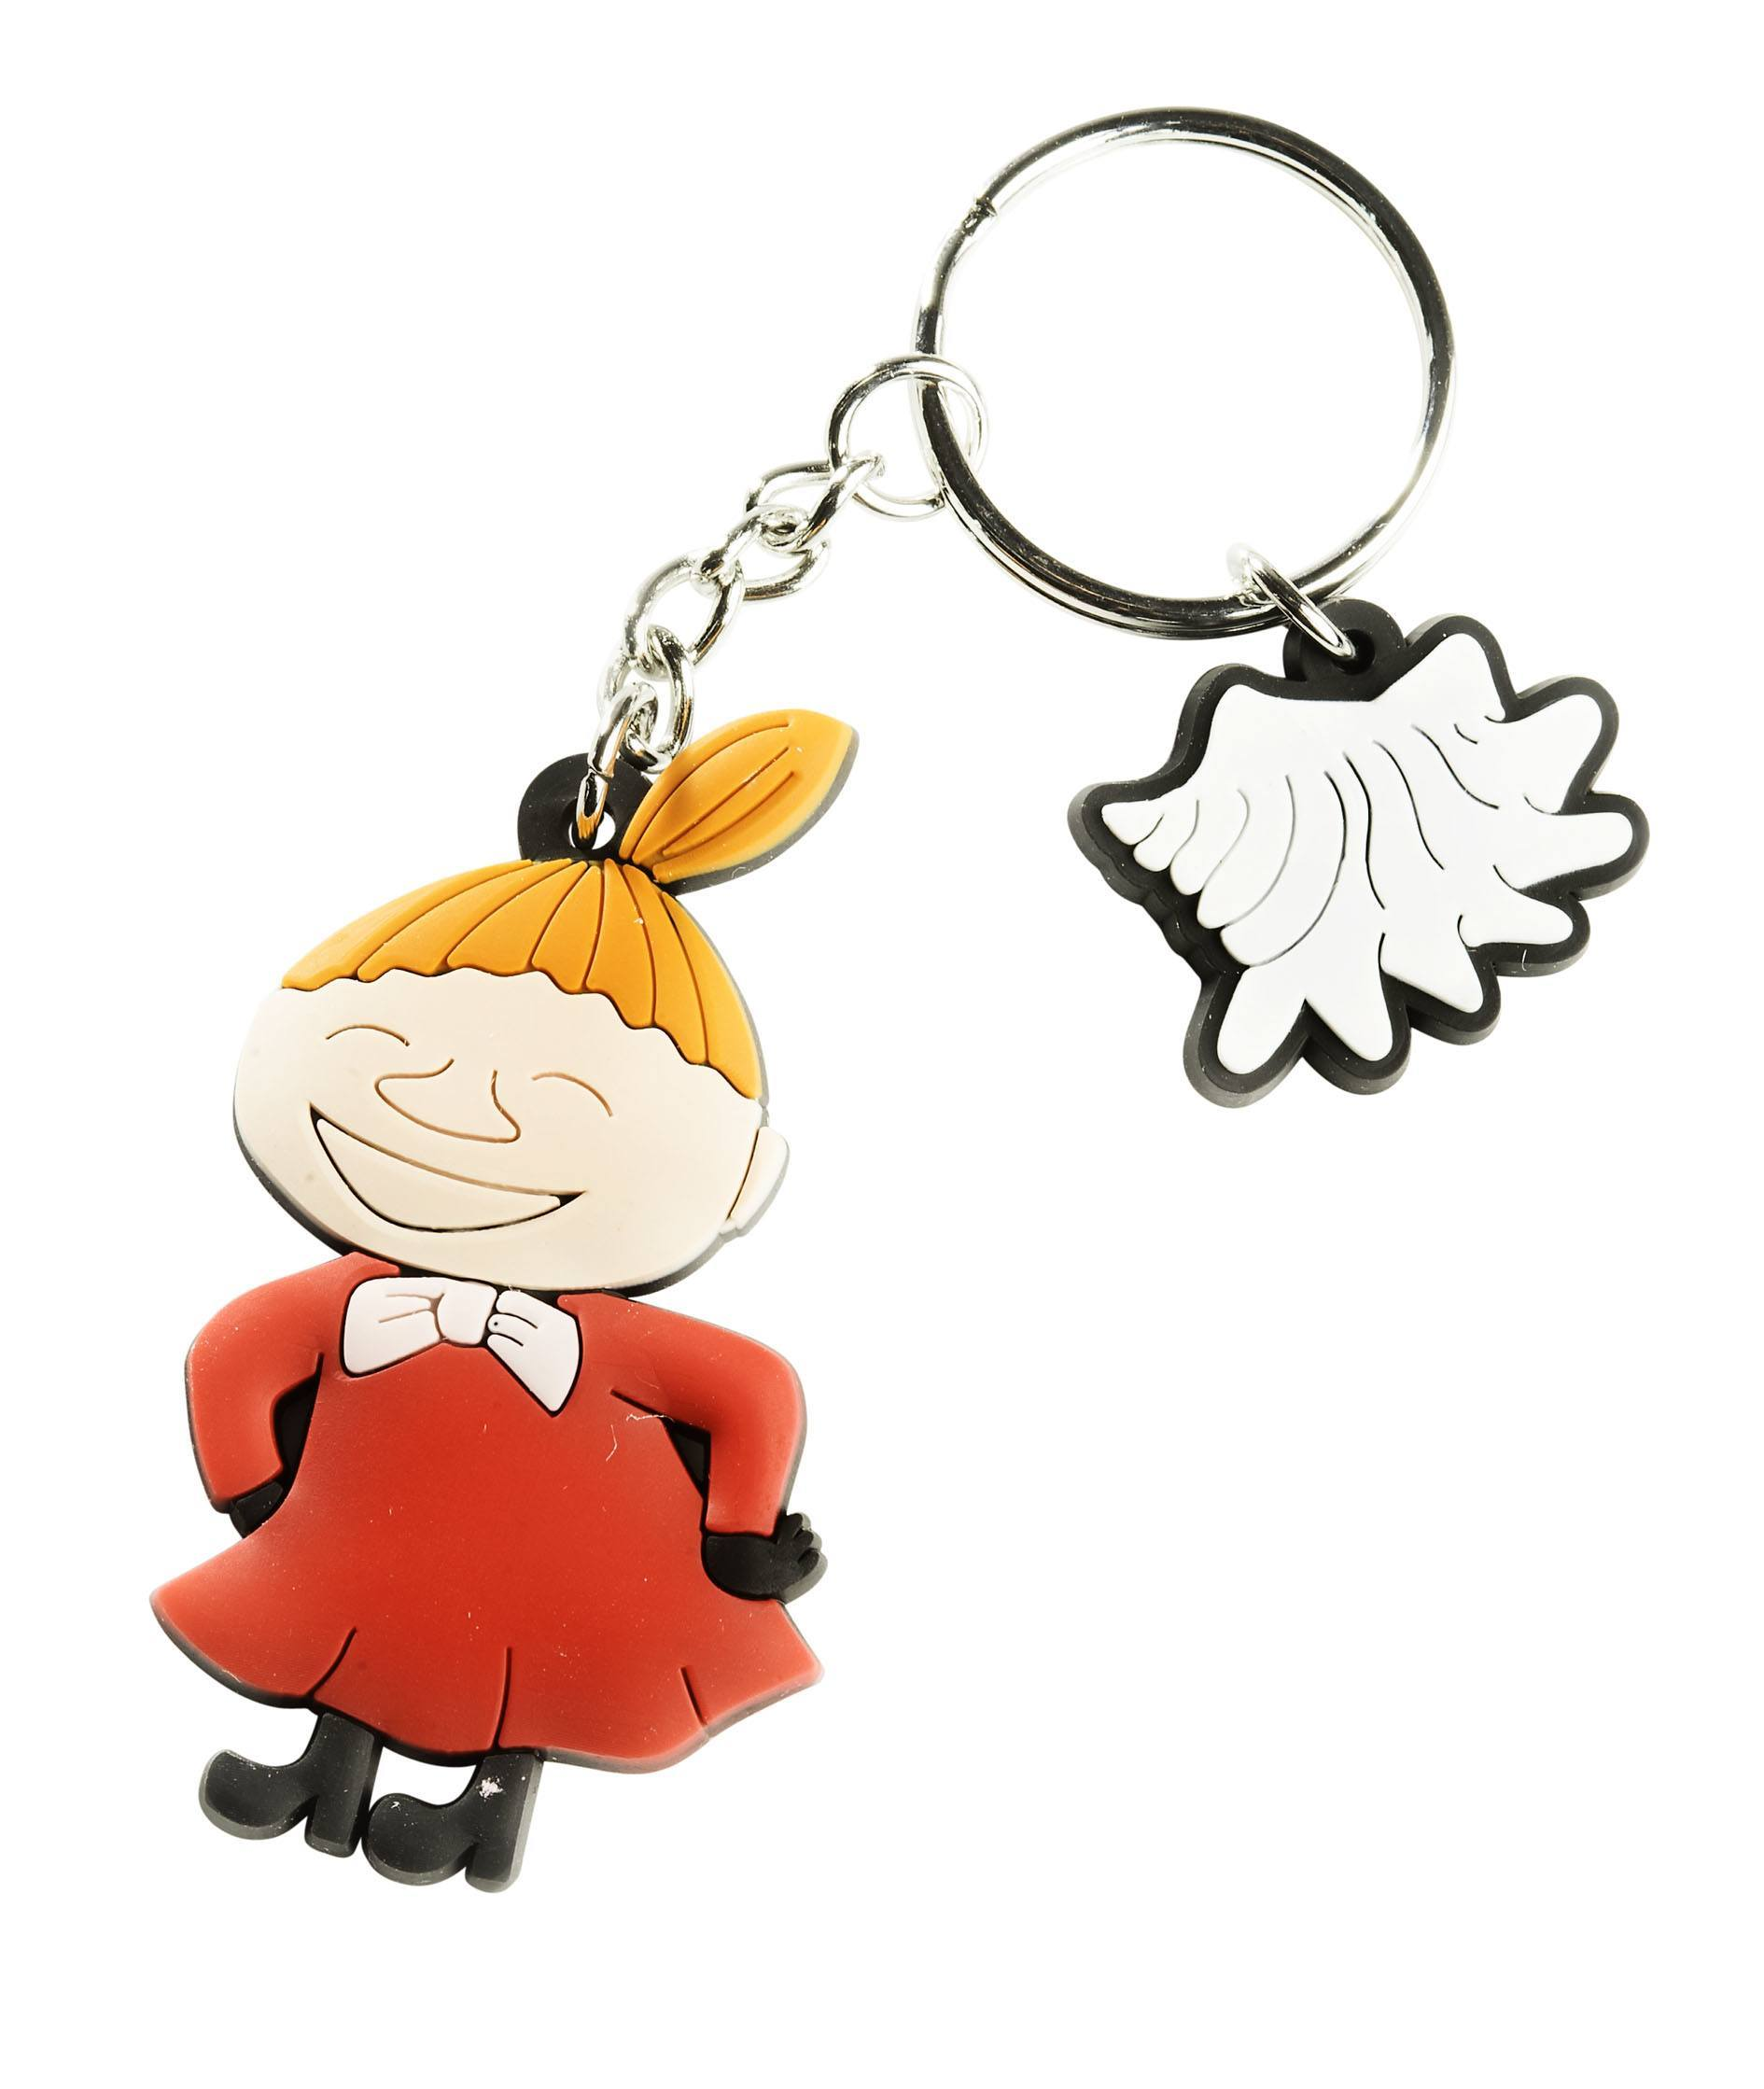 CAILAP KEY RING WITH LITTLE MY